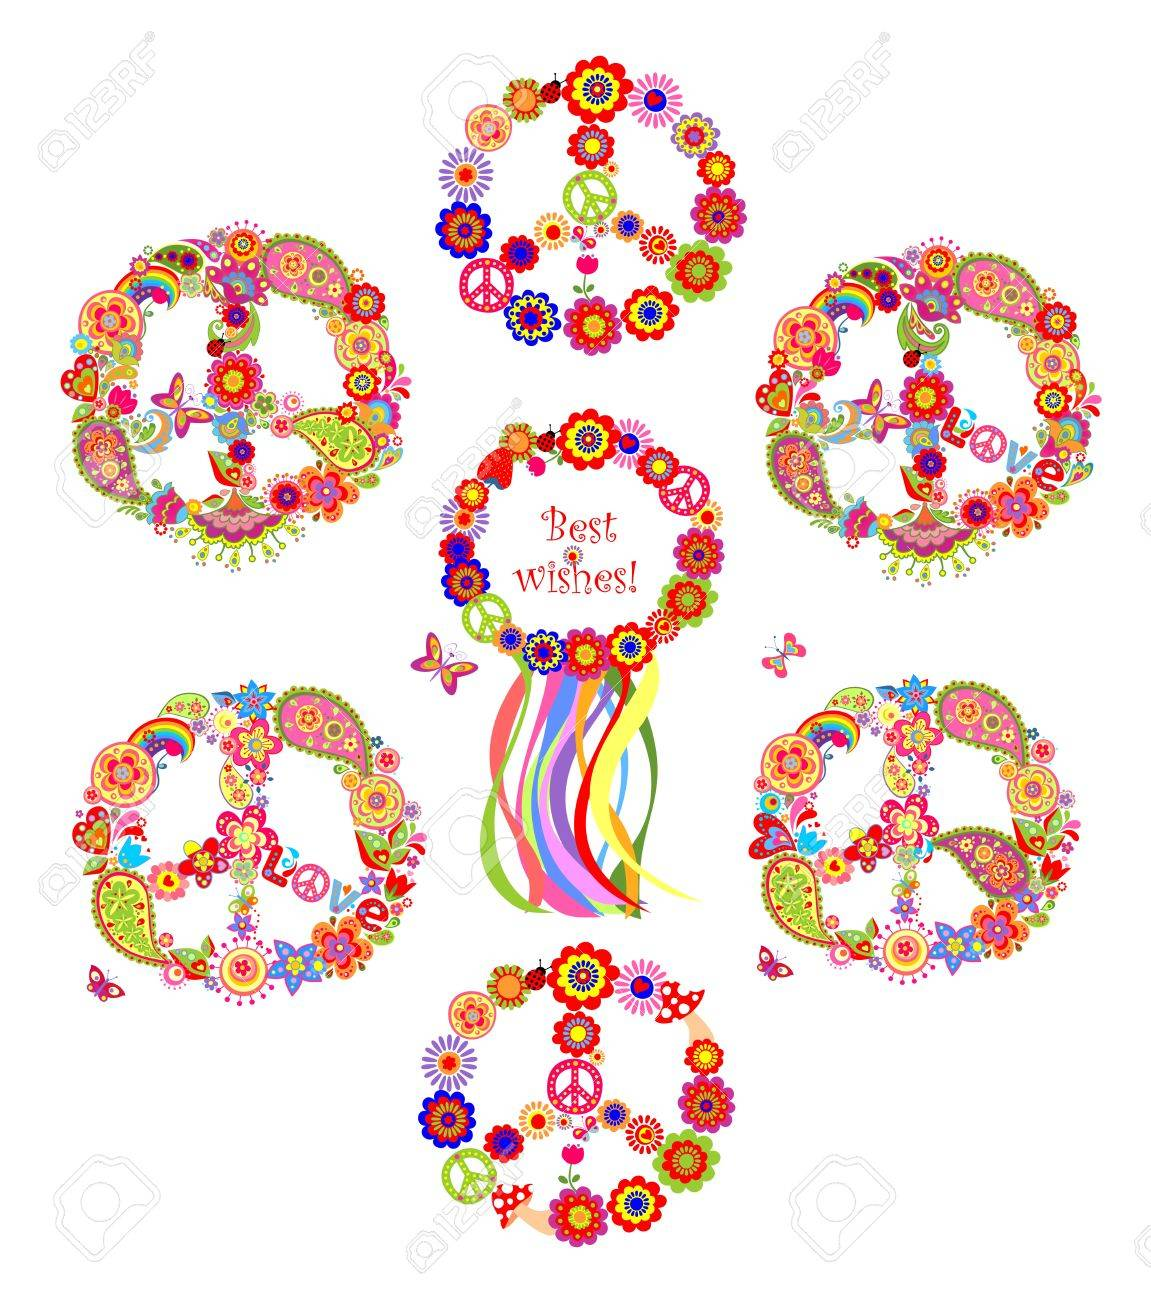 Collection Of Peace Flowers Symbols Royalty Free Cliparts Vectors